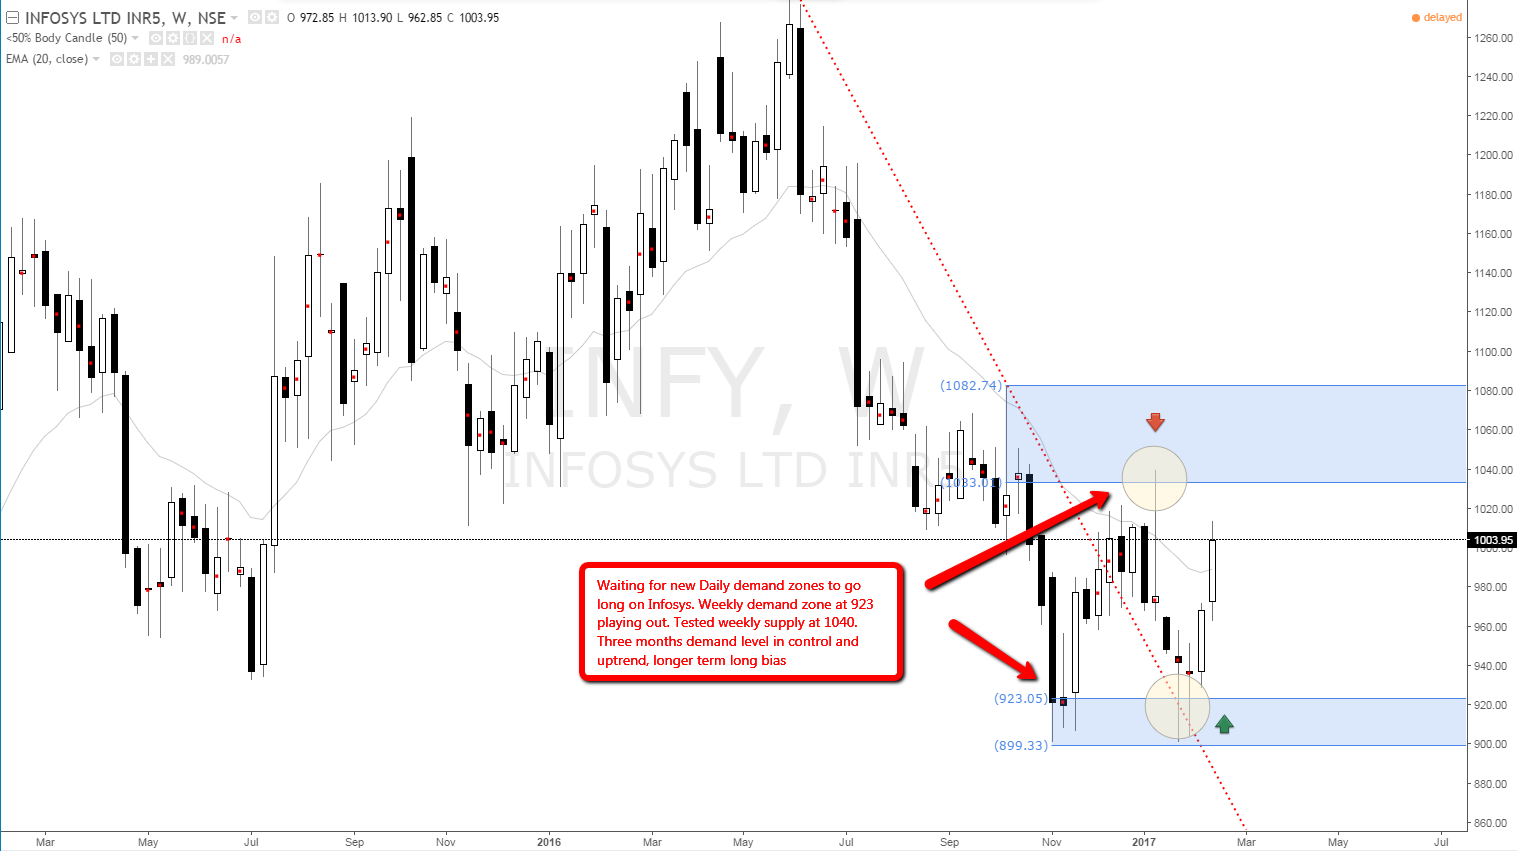 infosys_weekly_demand_imbalance_level